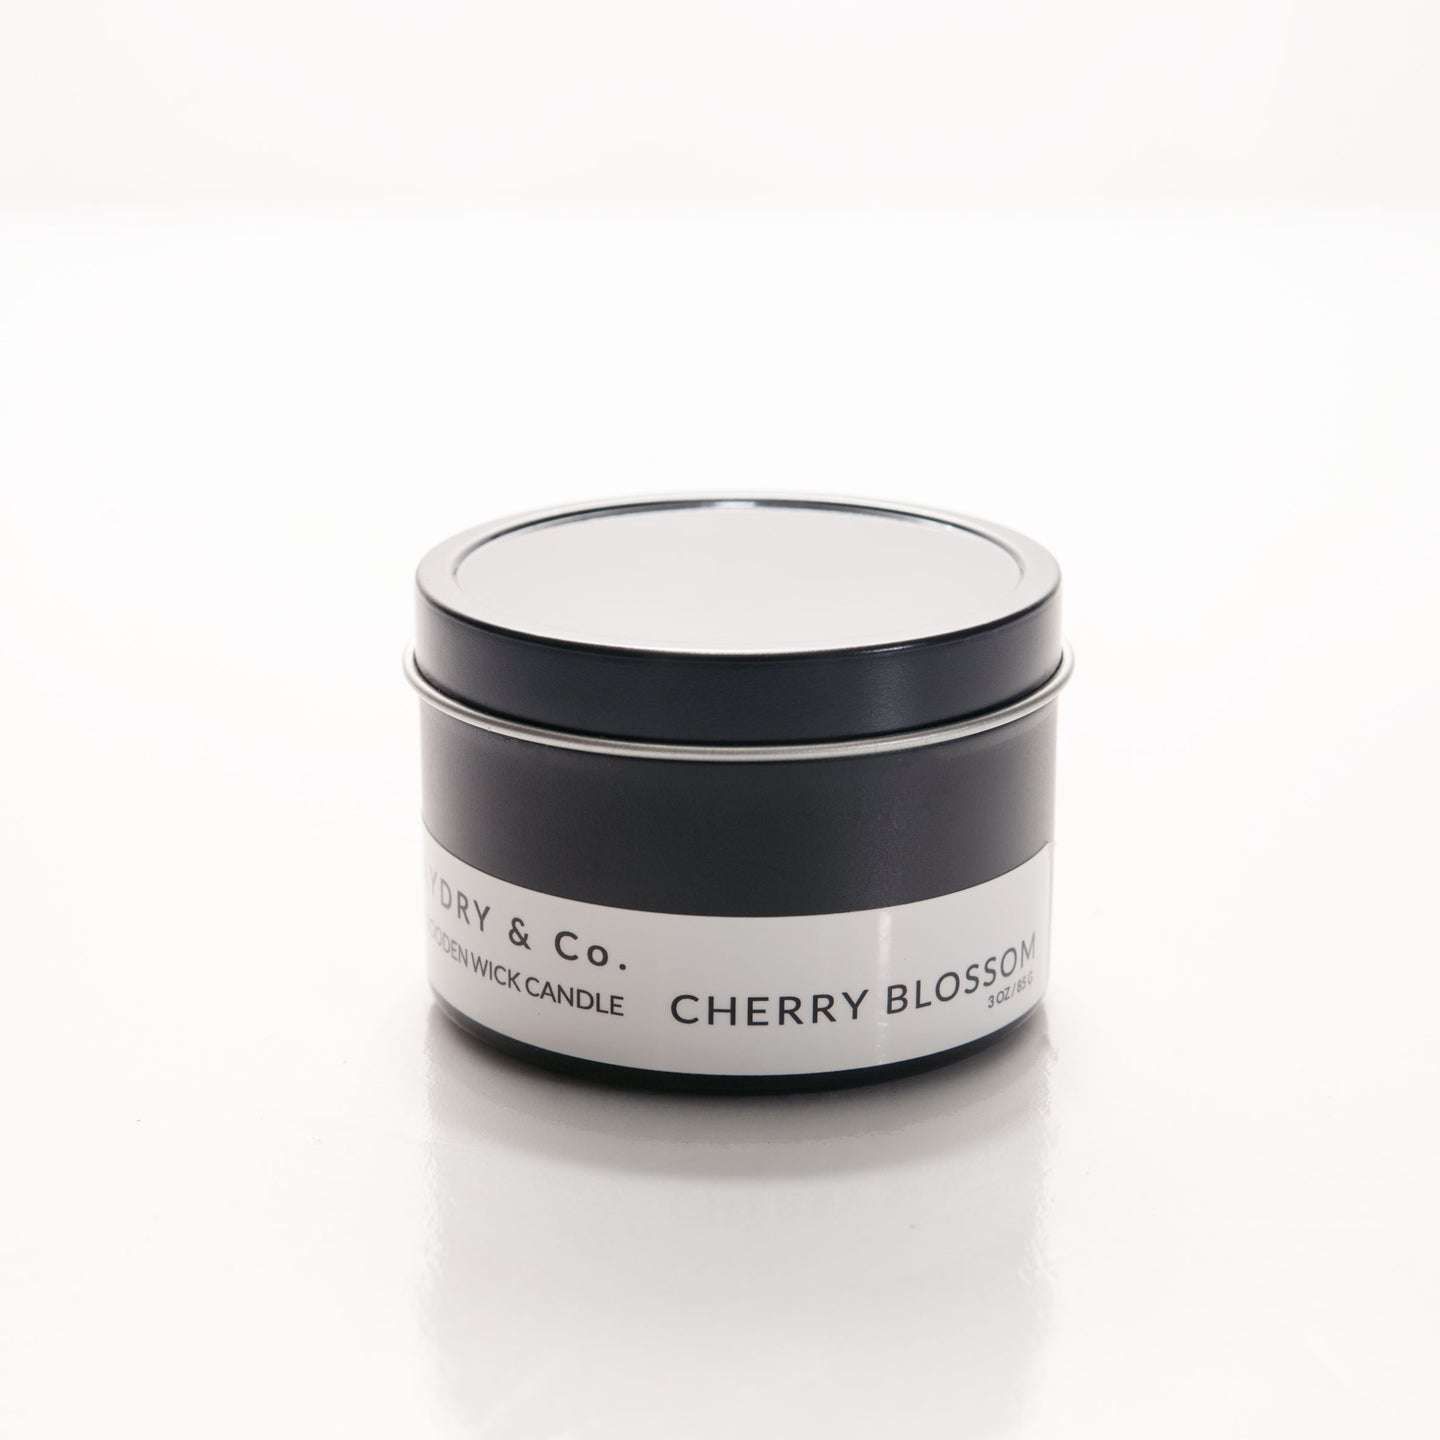 Refresh Moment Aydry & Co. Cherry Blossom